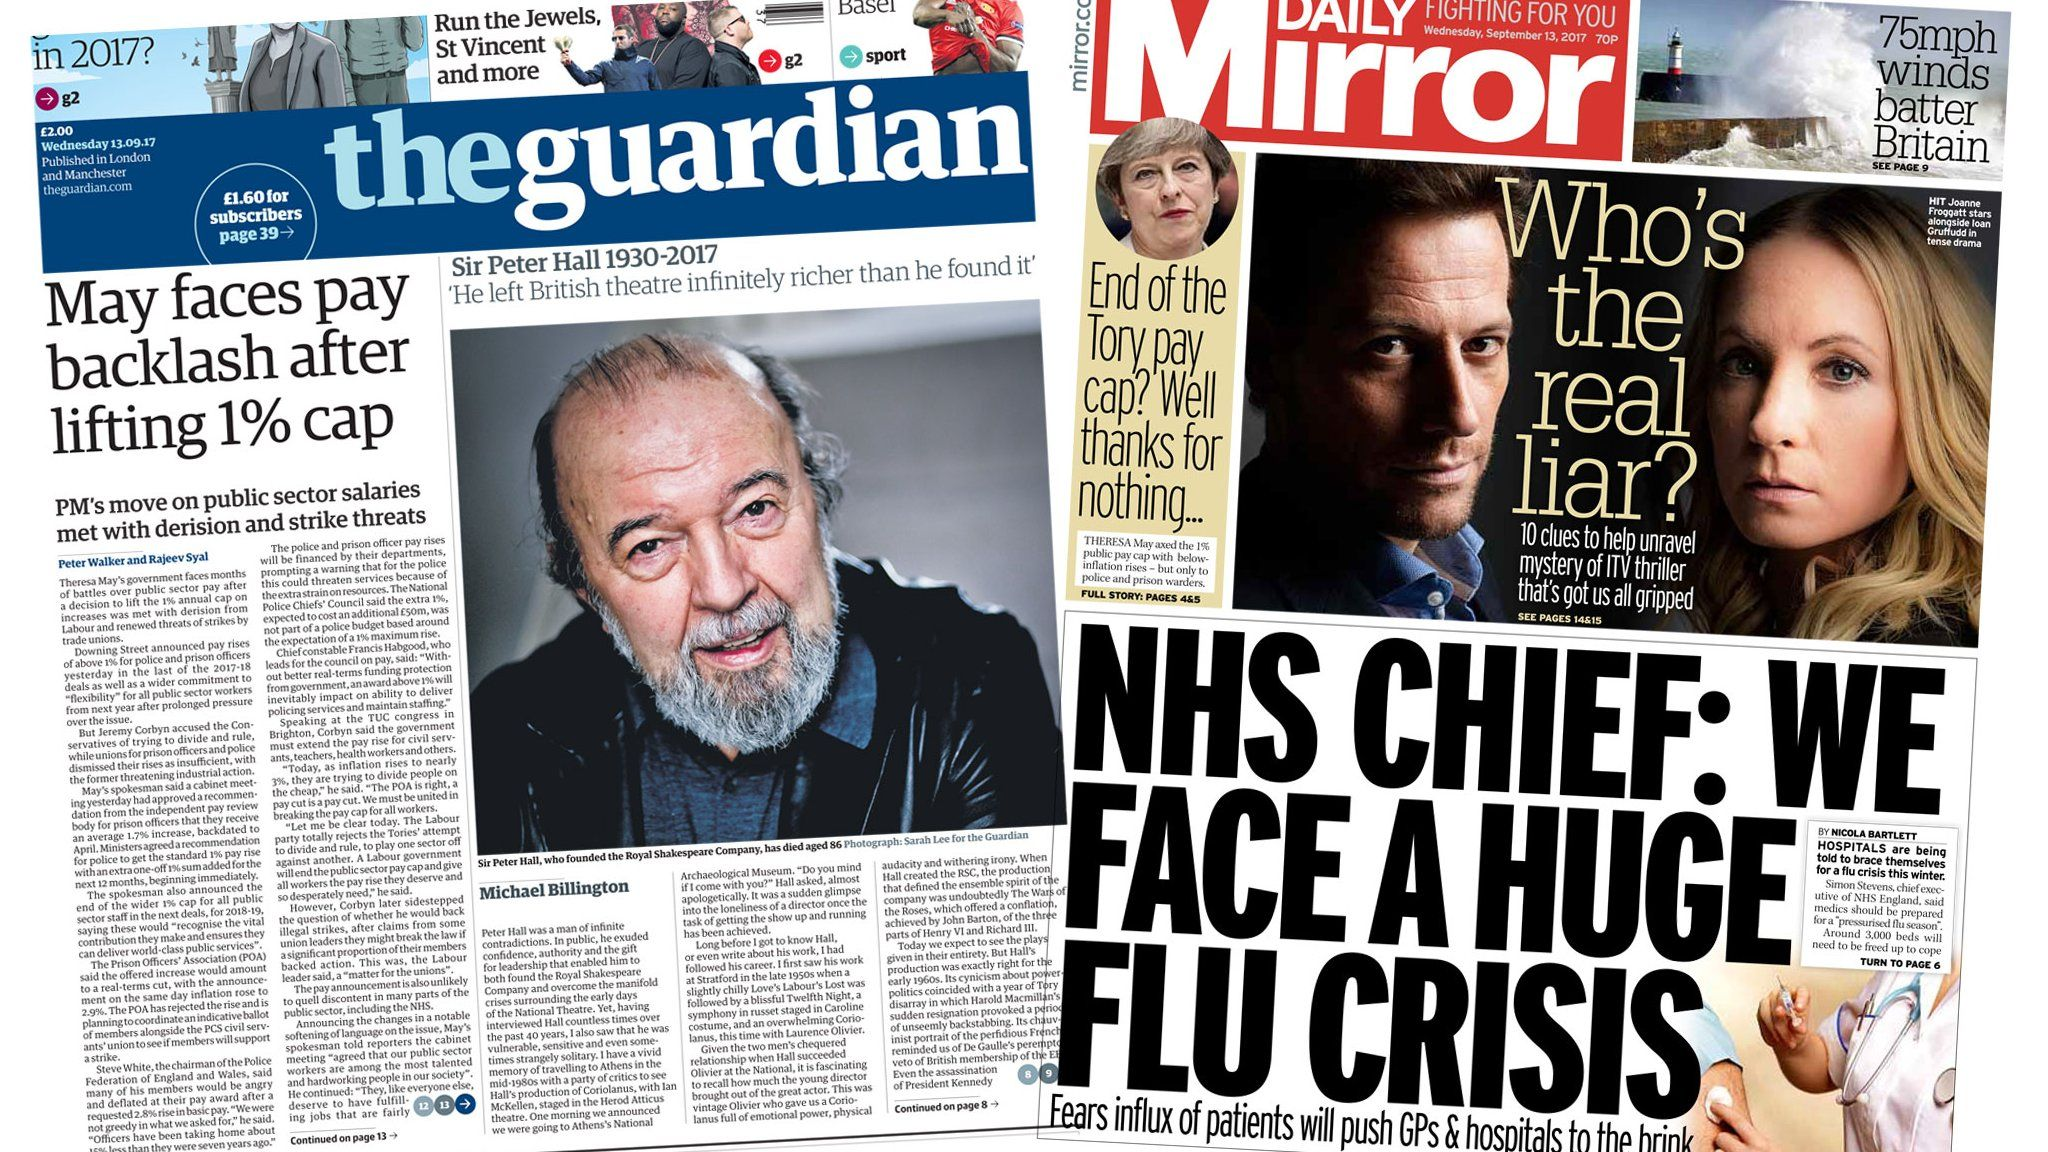 Guardian/Mirror front page